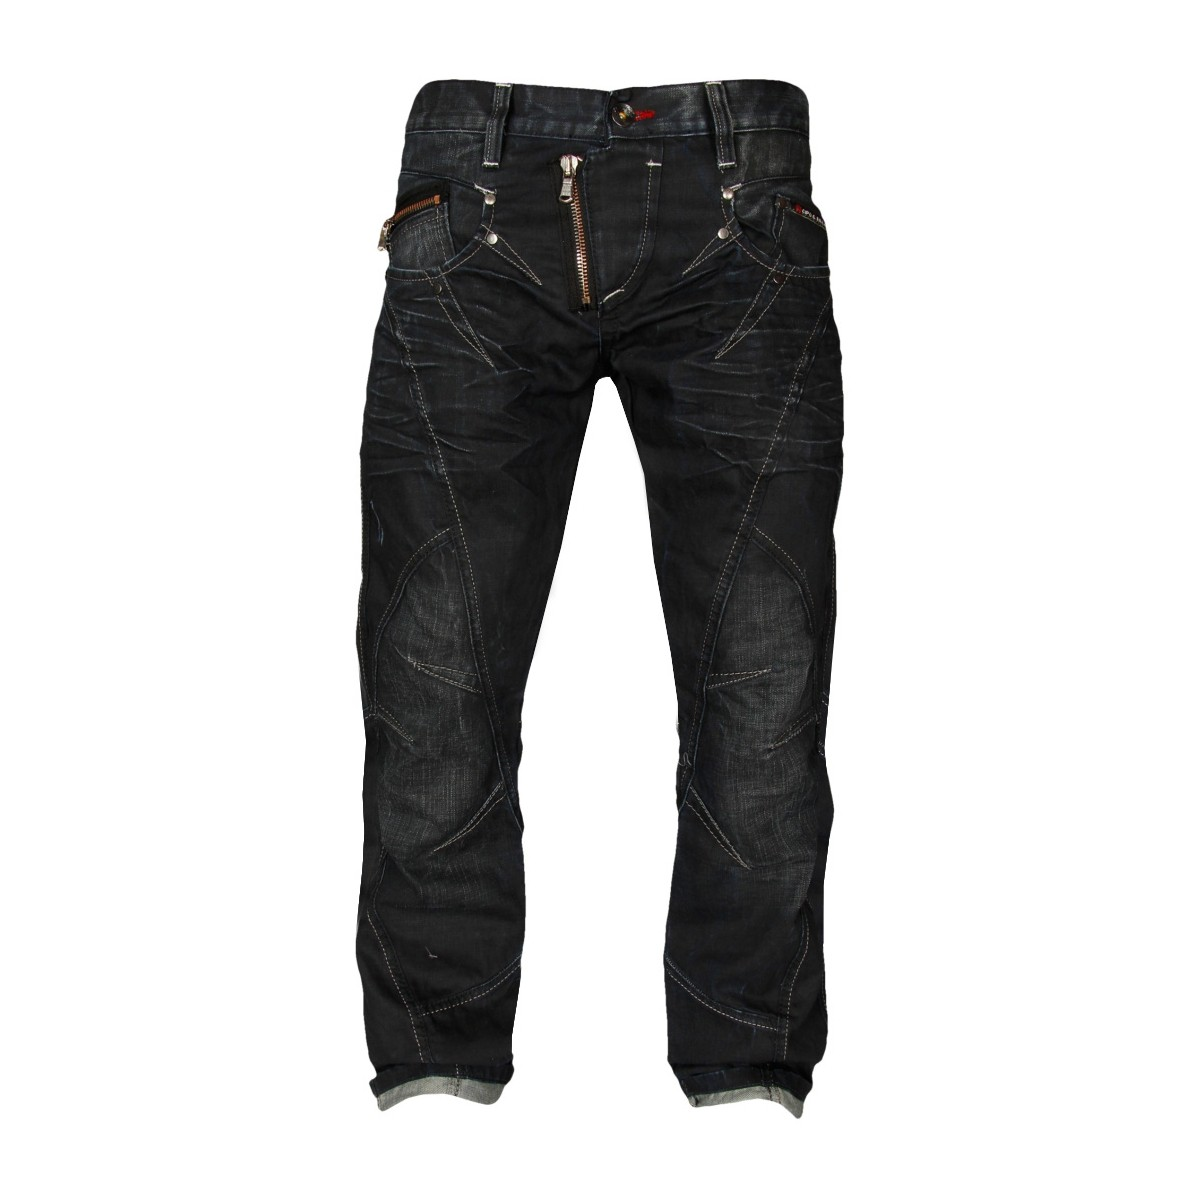 Cipo & Baxx Herren Jeans Pointed Teeth - Regular Fit - Schwarzblau